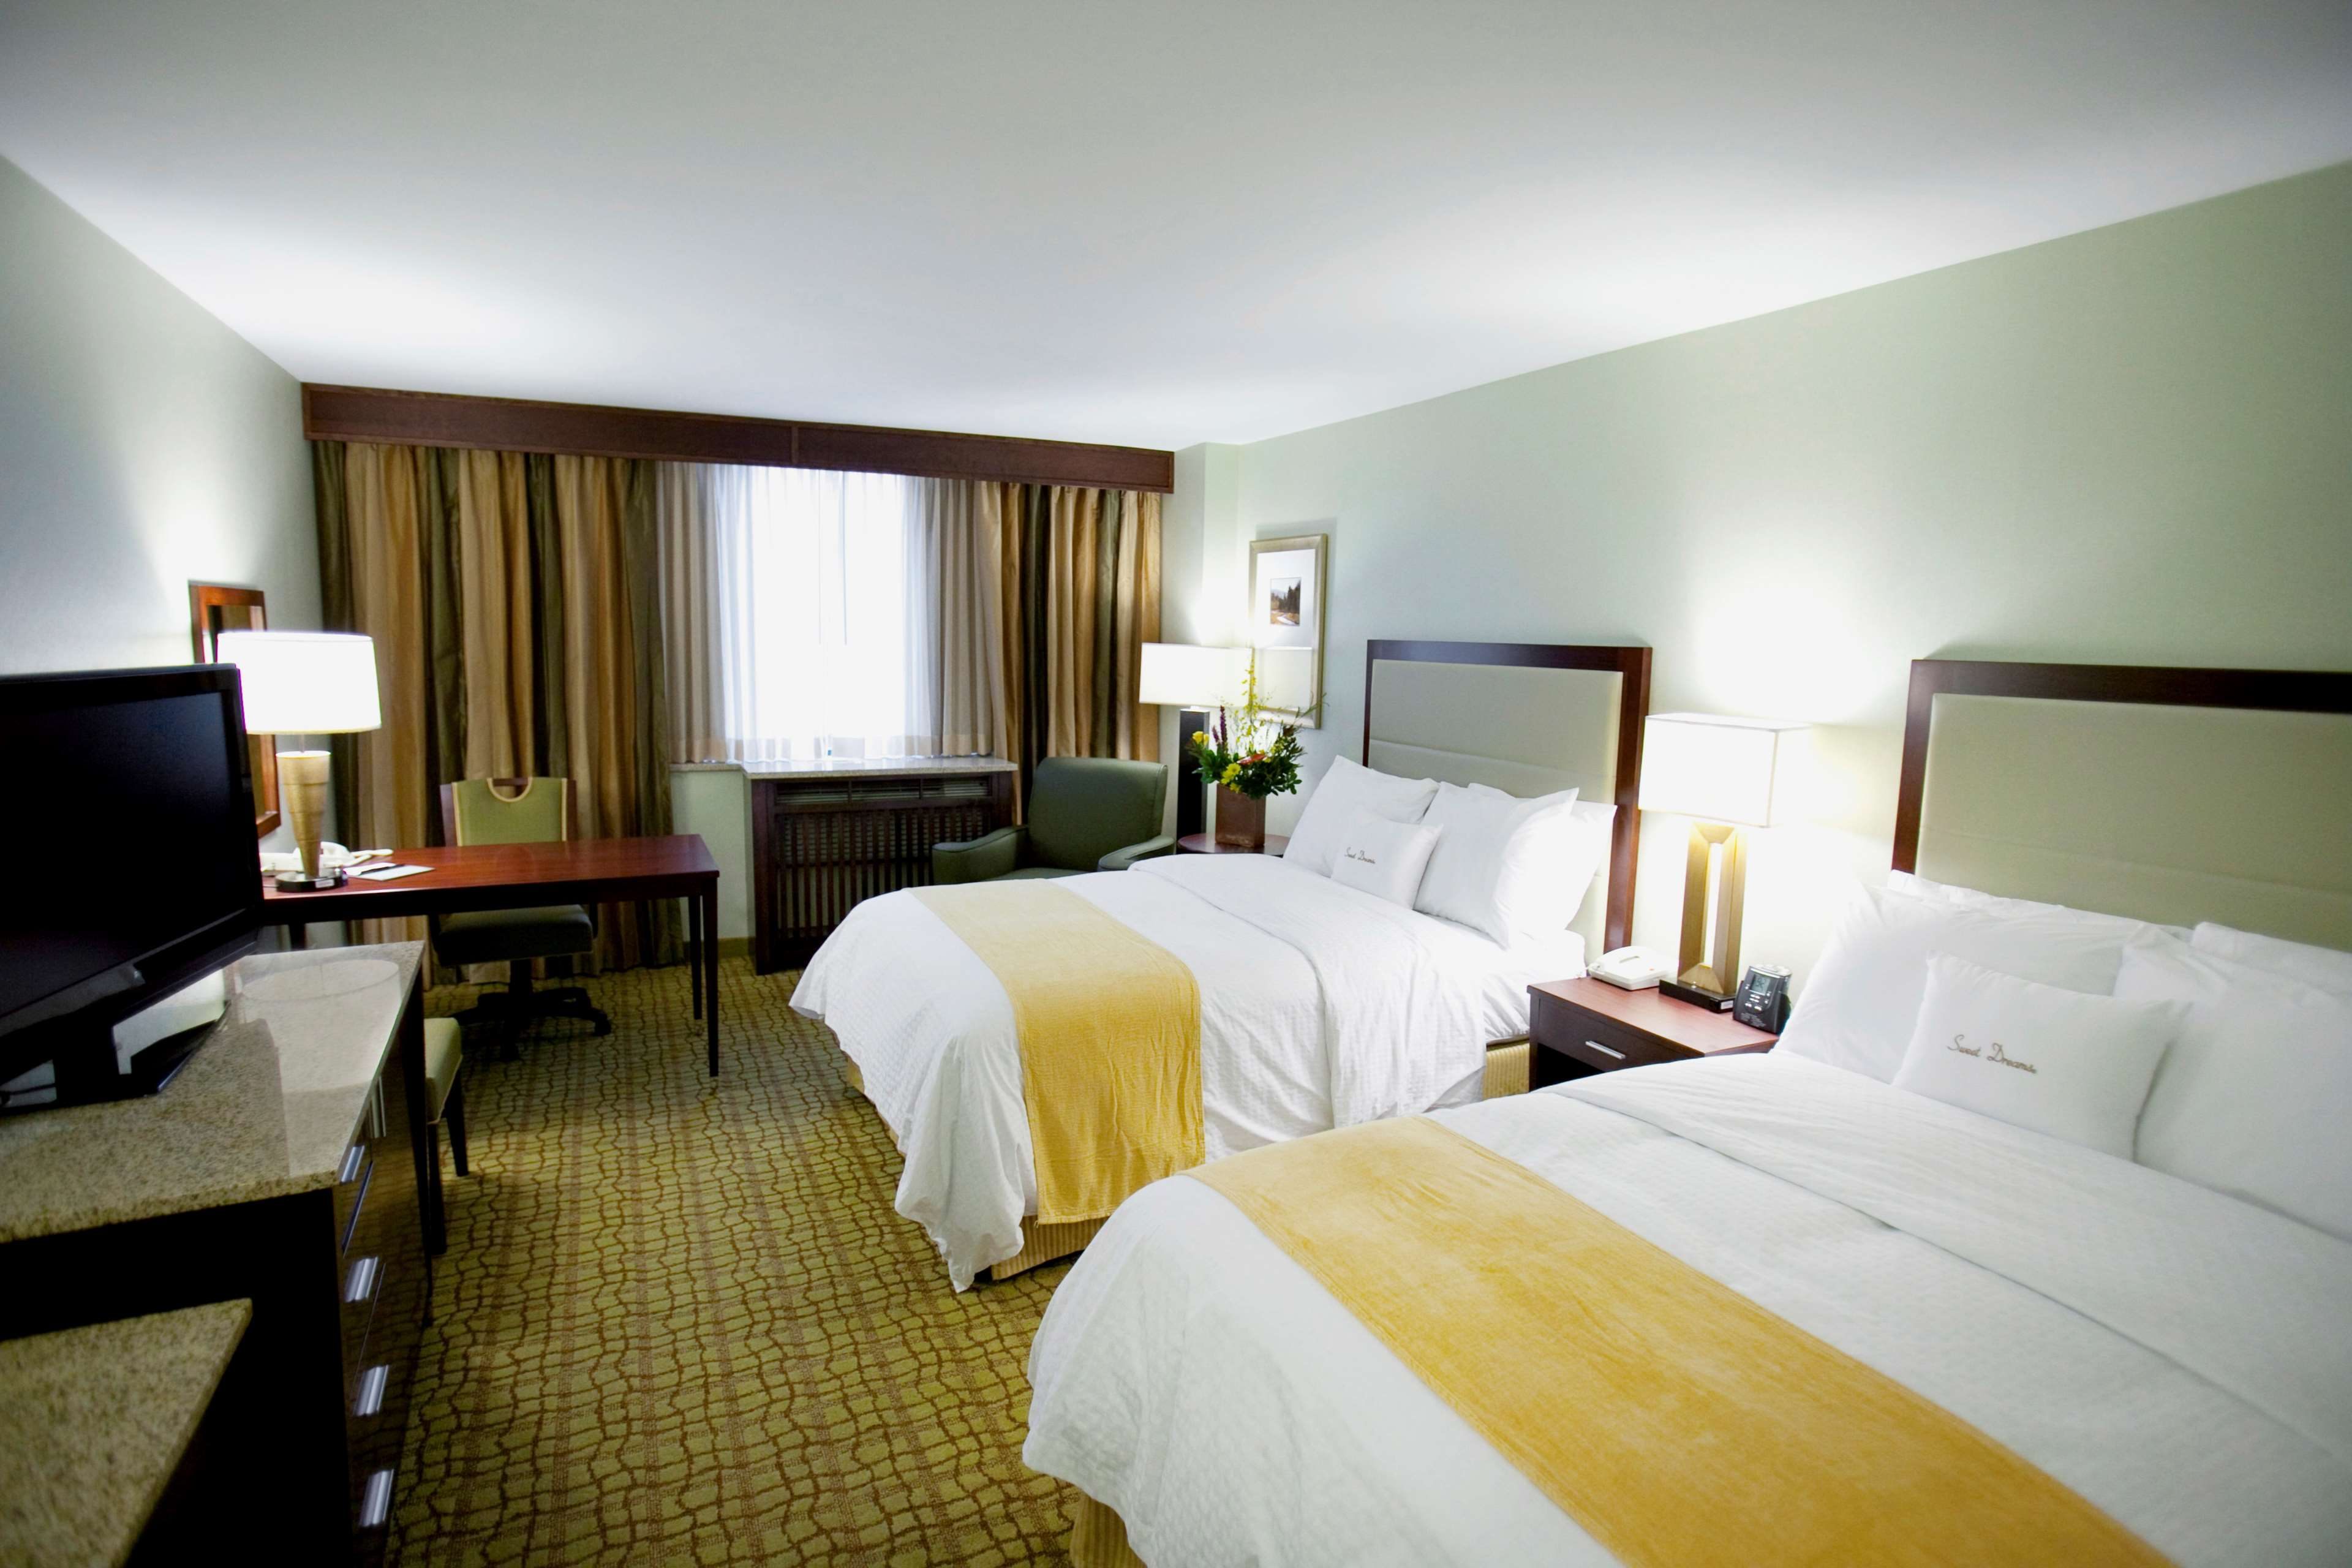 DoubleTree by Hilton Hotel Rochester - Mayo Clinic Area image 34